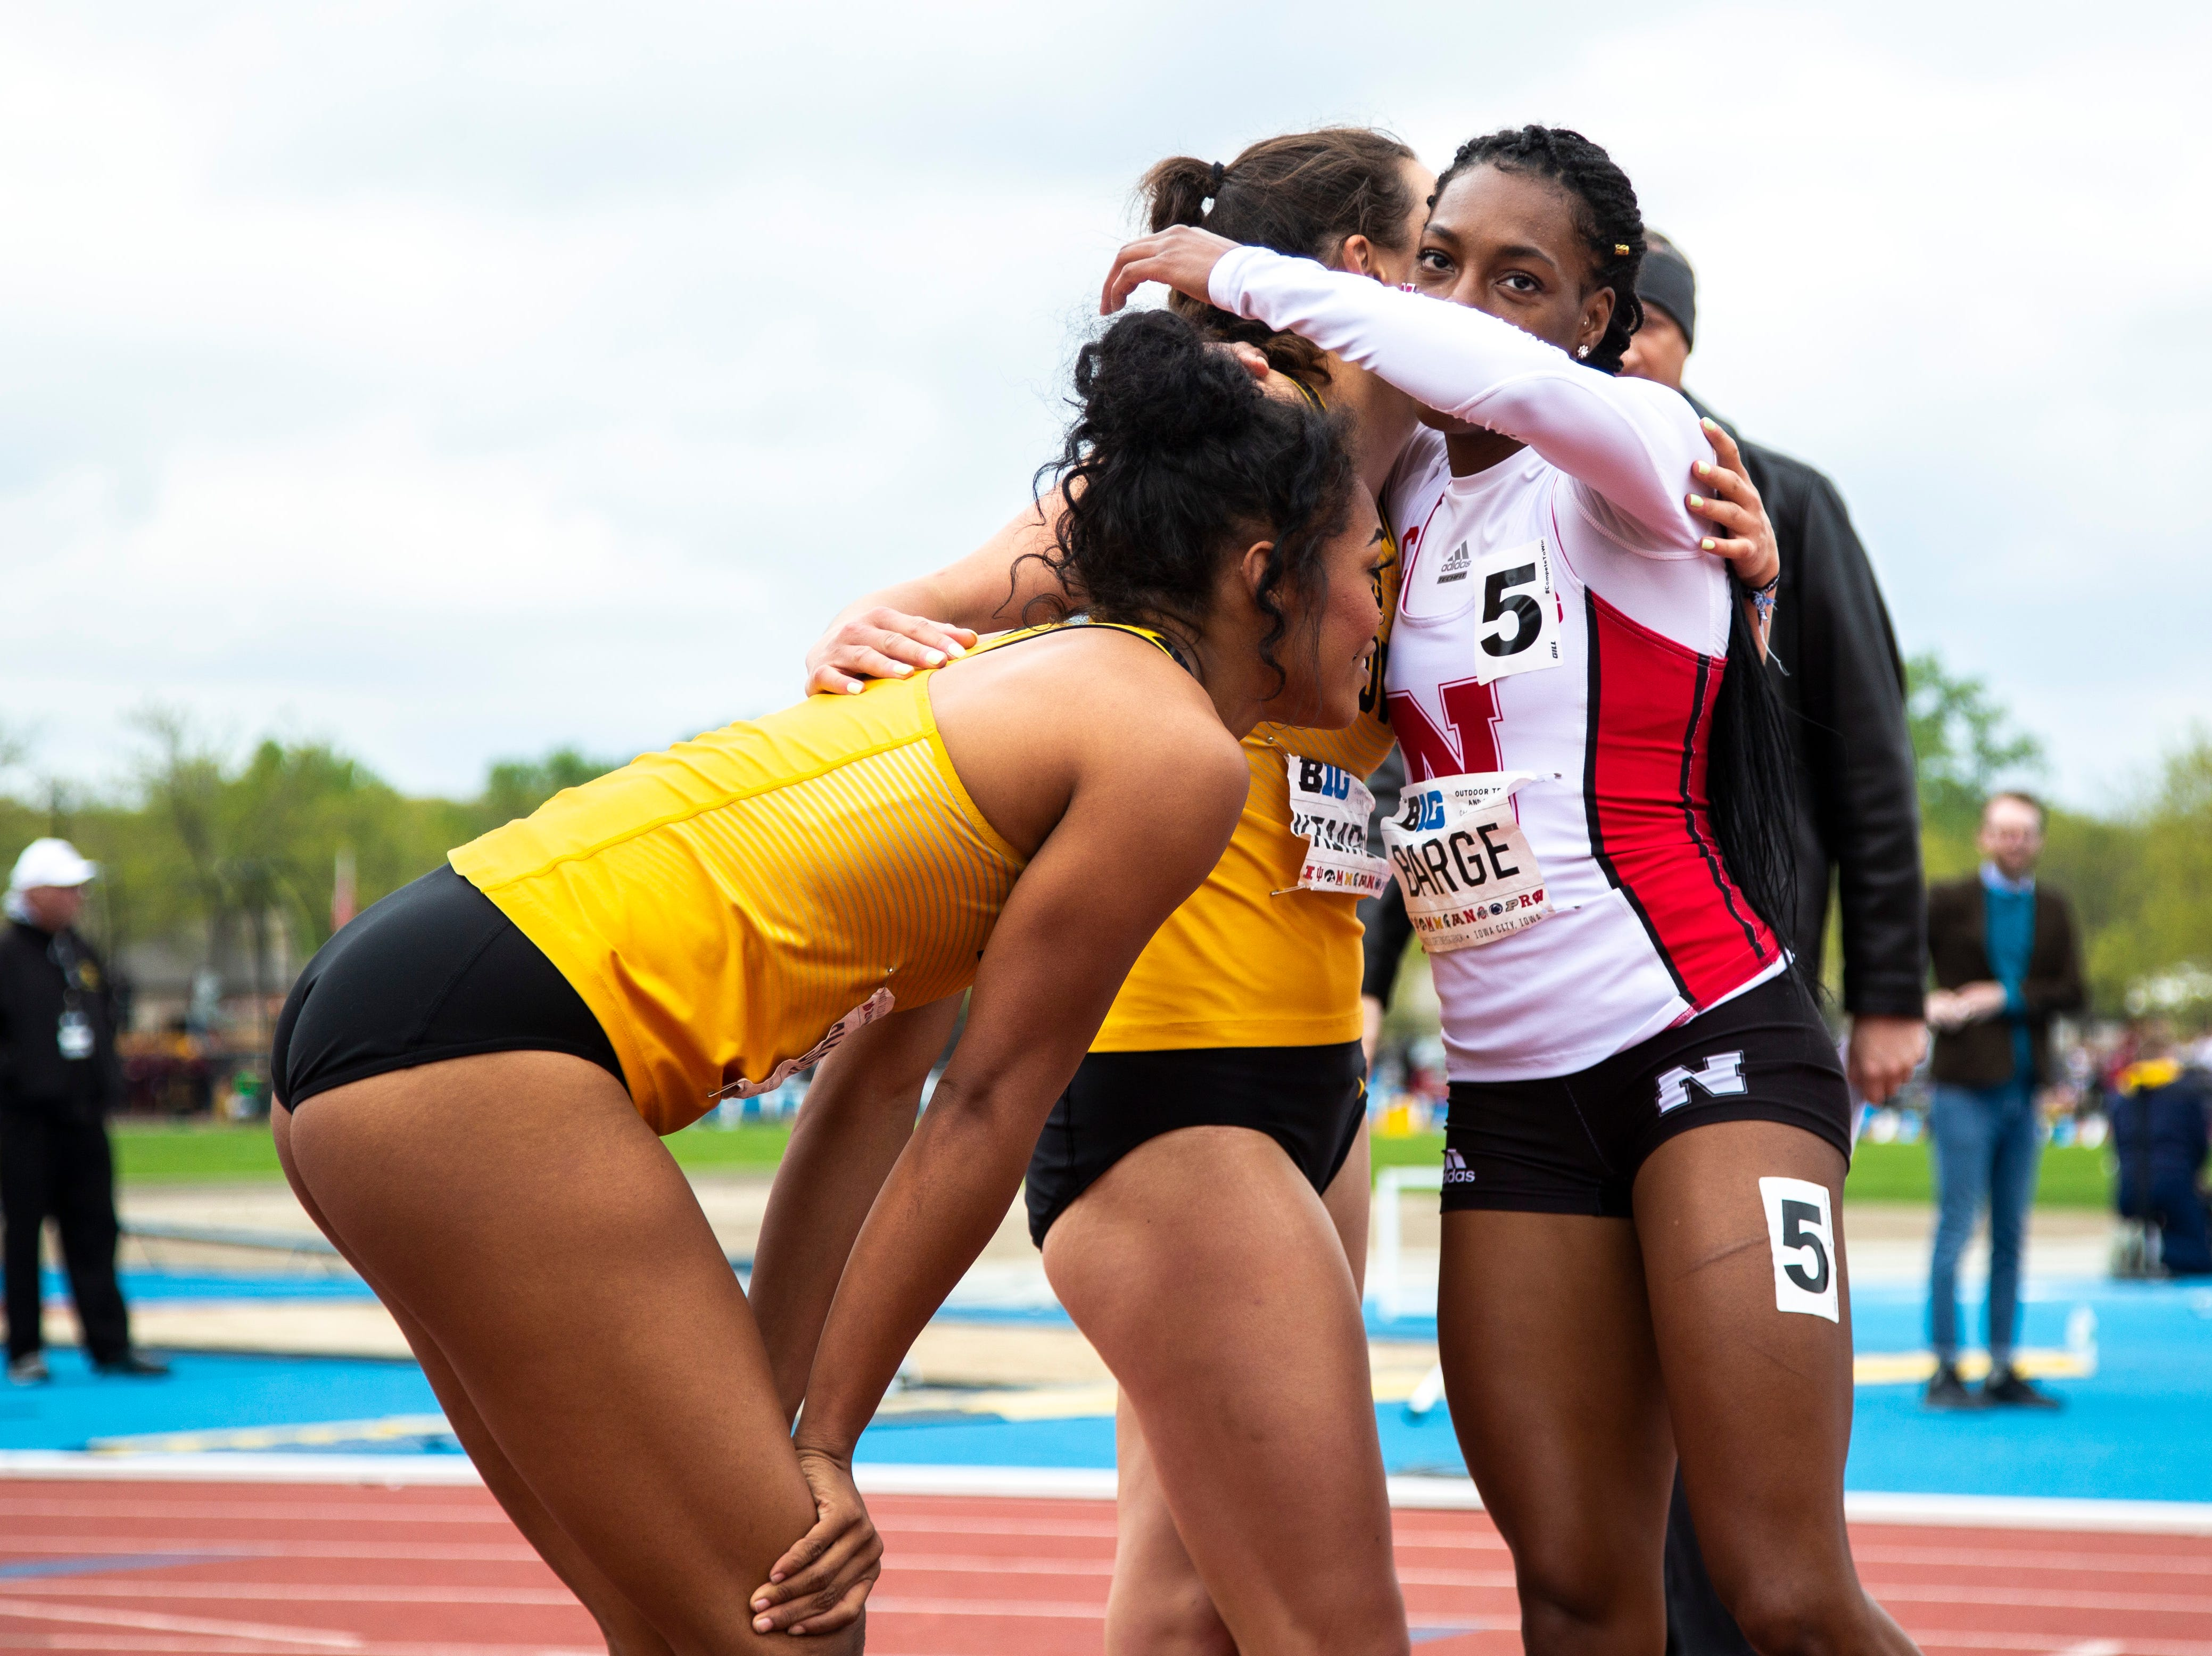 Nebraska's Jasmine Barge (5) hugs Iowa's Jenny Kimbo after competing in the 100 meter hurdles during the final day of Big Ten track and field outdoor championships, Sunday, May 12, 2019, at Francis X. Cretzmeyer Track on the University of Iowa campus in Iowa City, Iowa. Barge took first, with a time of 13.25, Kimbo finished second, with a time of 13.38.